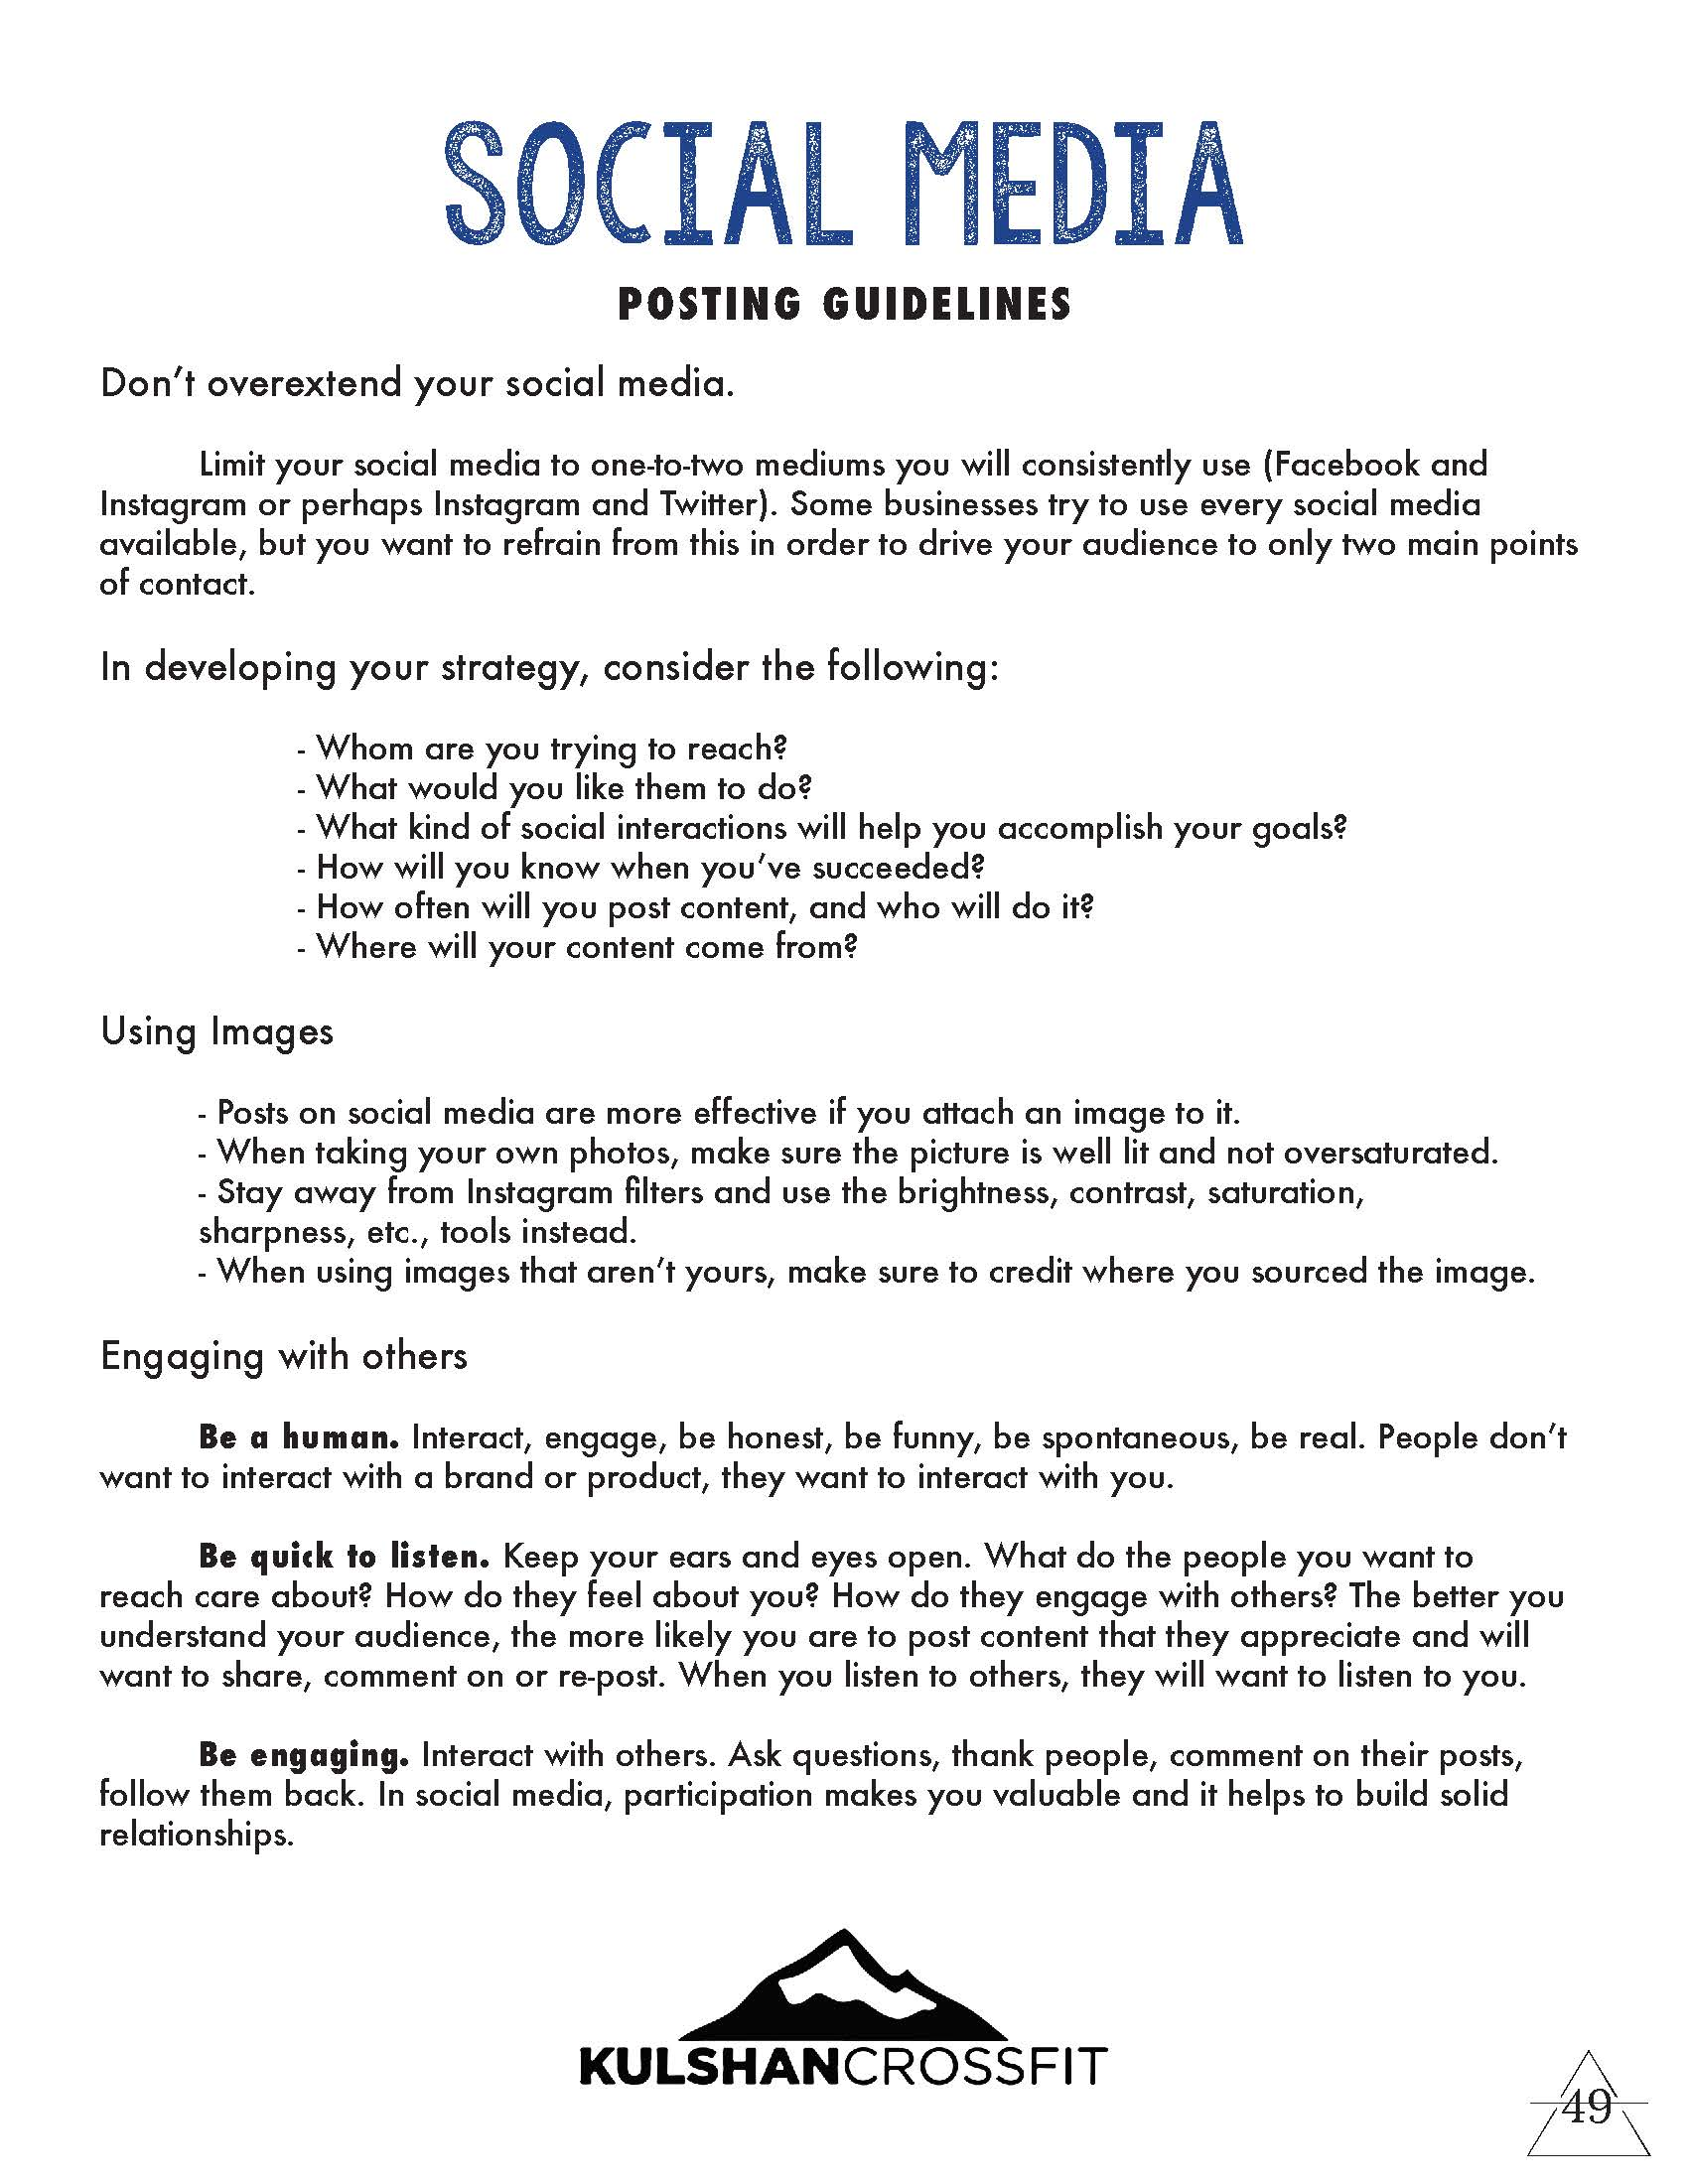 CAMPAIGNS BOOKLET FINAL_Page_49.jpg